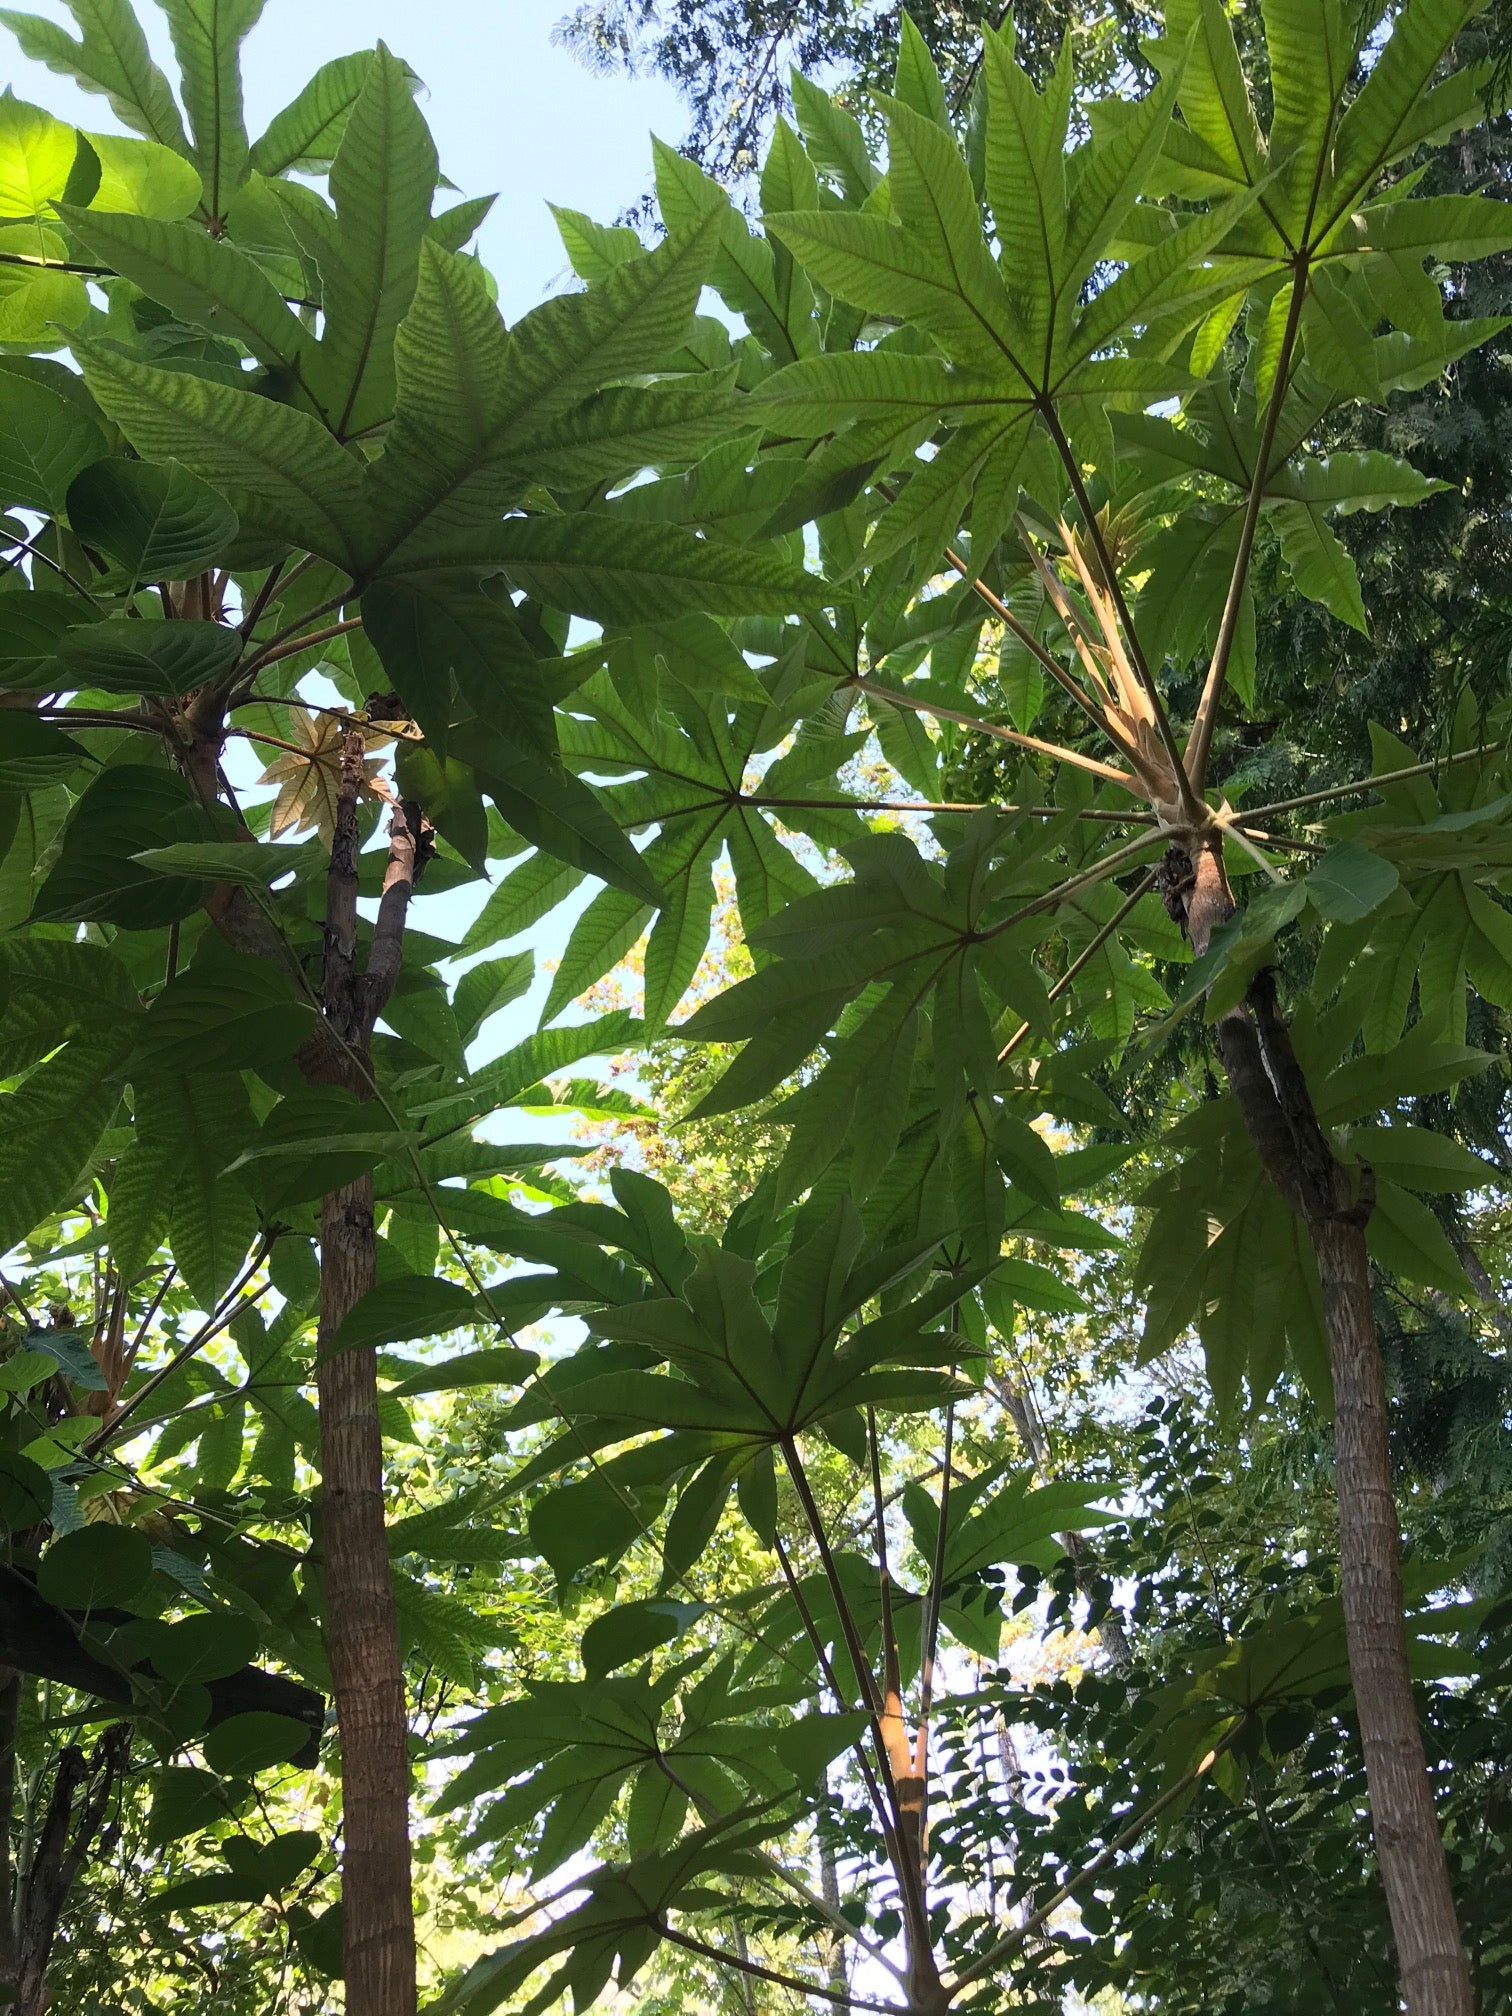 Tetrapanax papyrifer 'Steroidal Giant' (Steroidal Giant Rice Paper Plant)